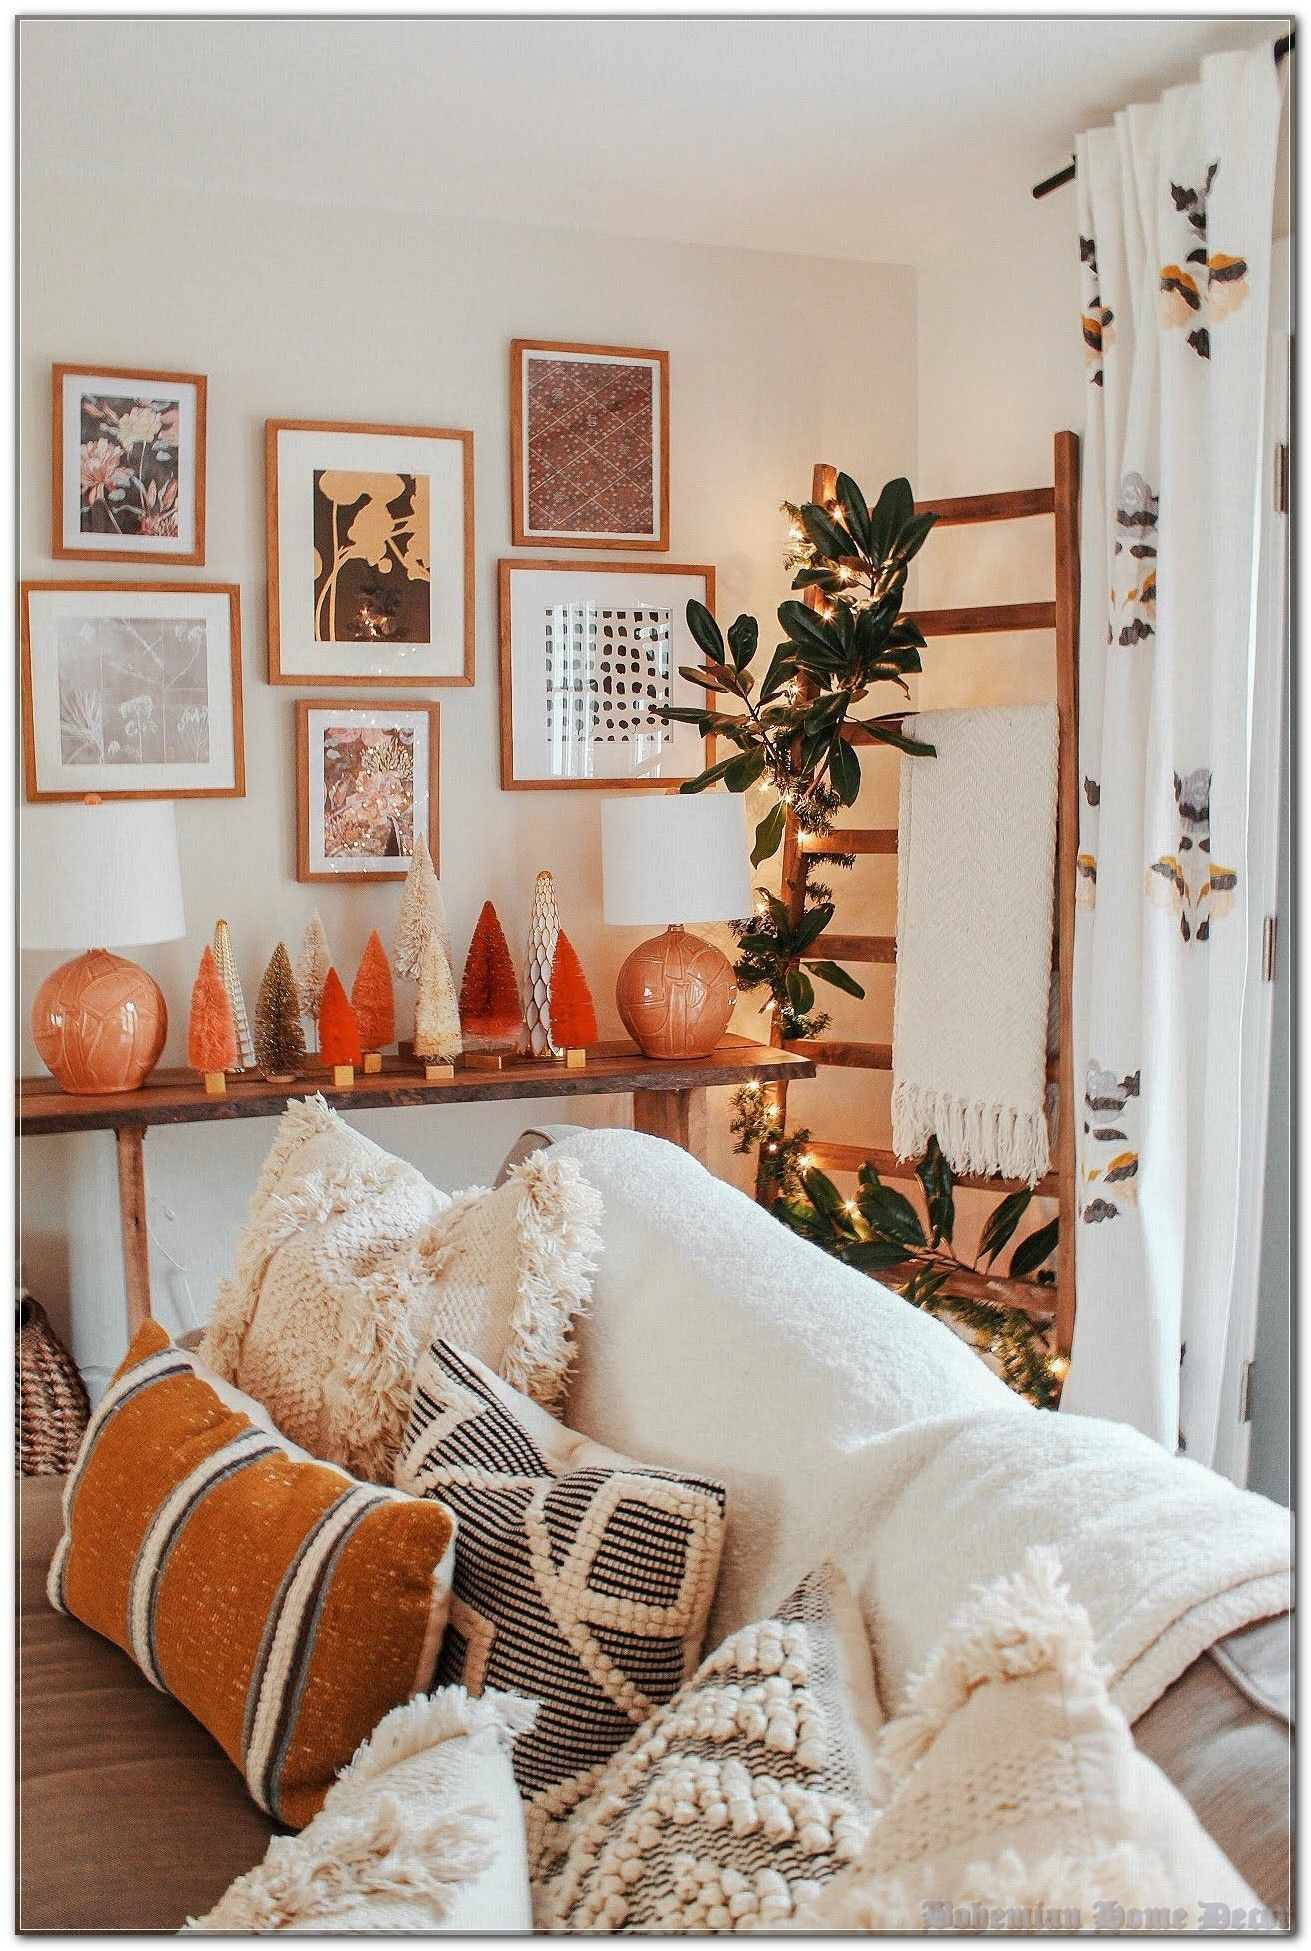 Bohemian Home Decor Not Resulting In Financial Prosperity